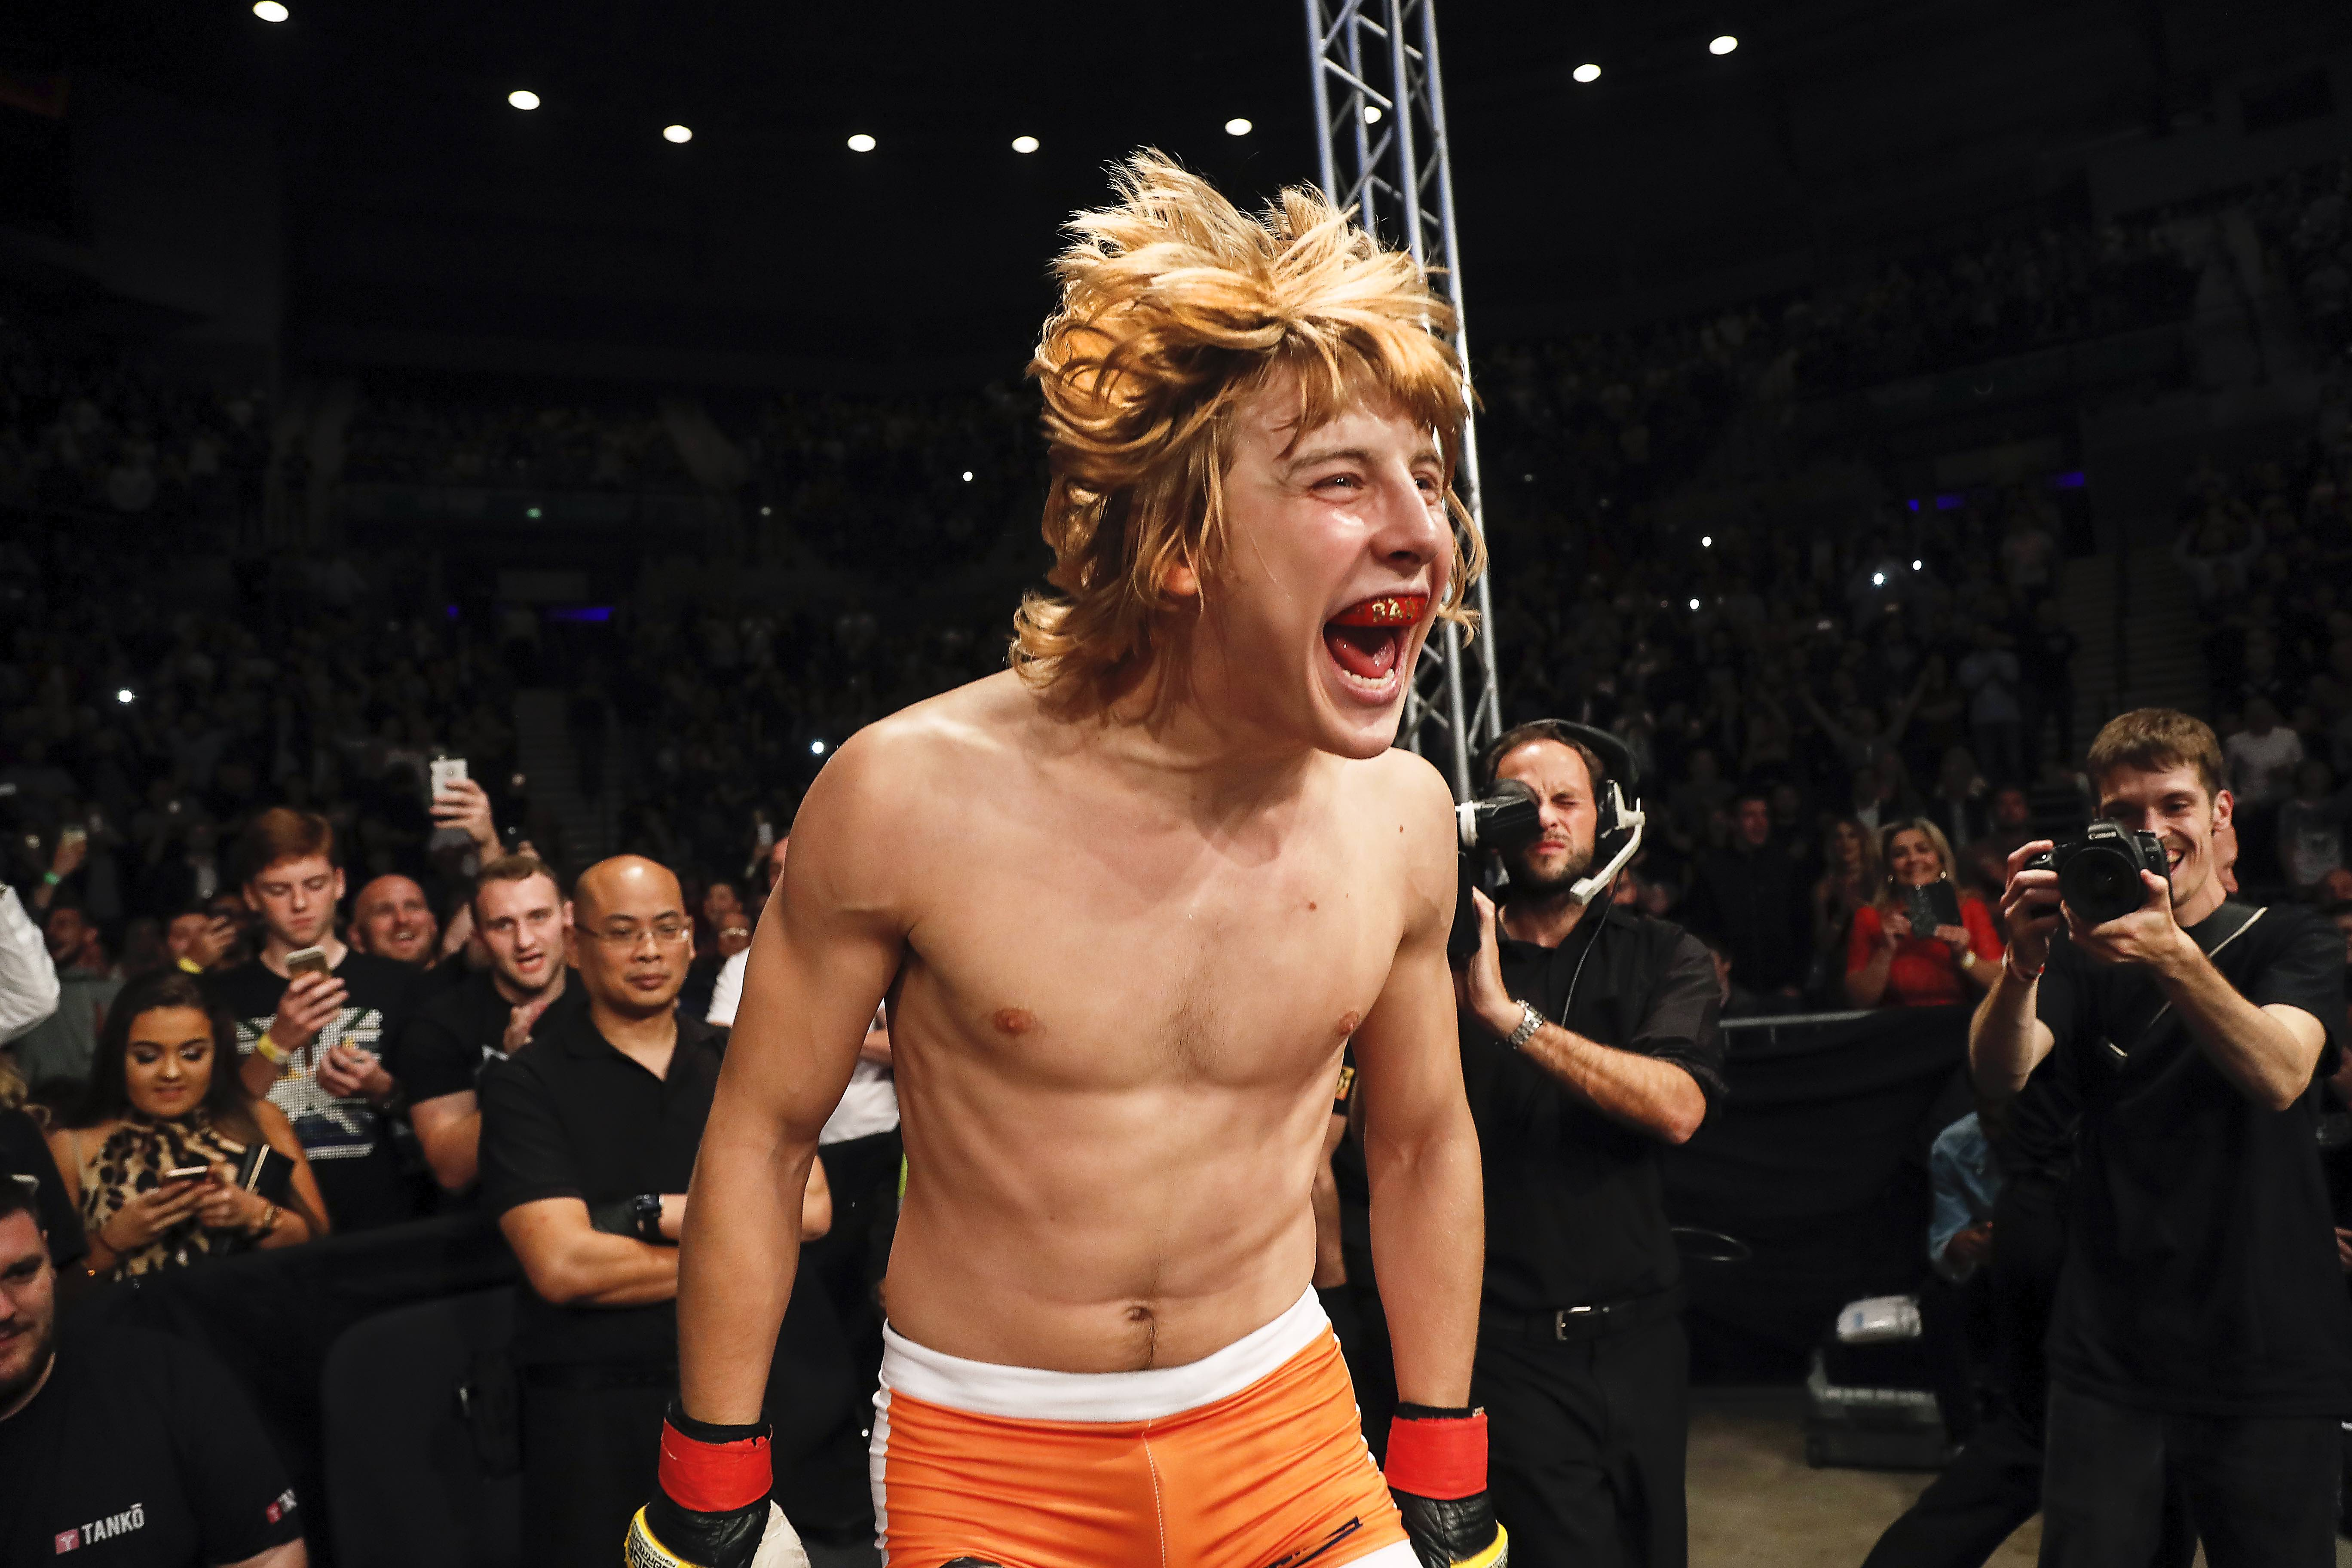 Paddy Pimblett walks to the cage ahead of a Cage Warriors event.